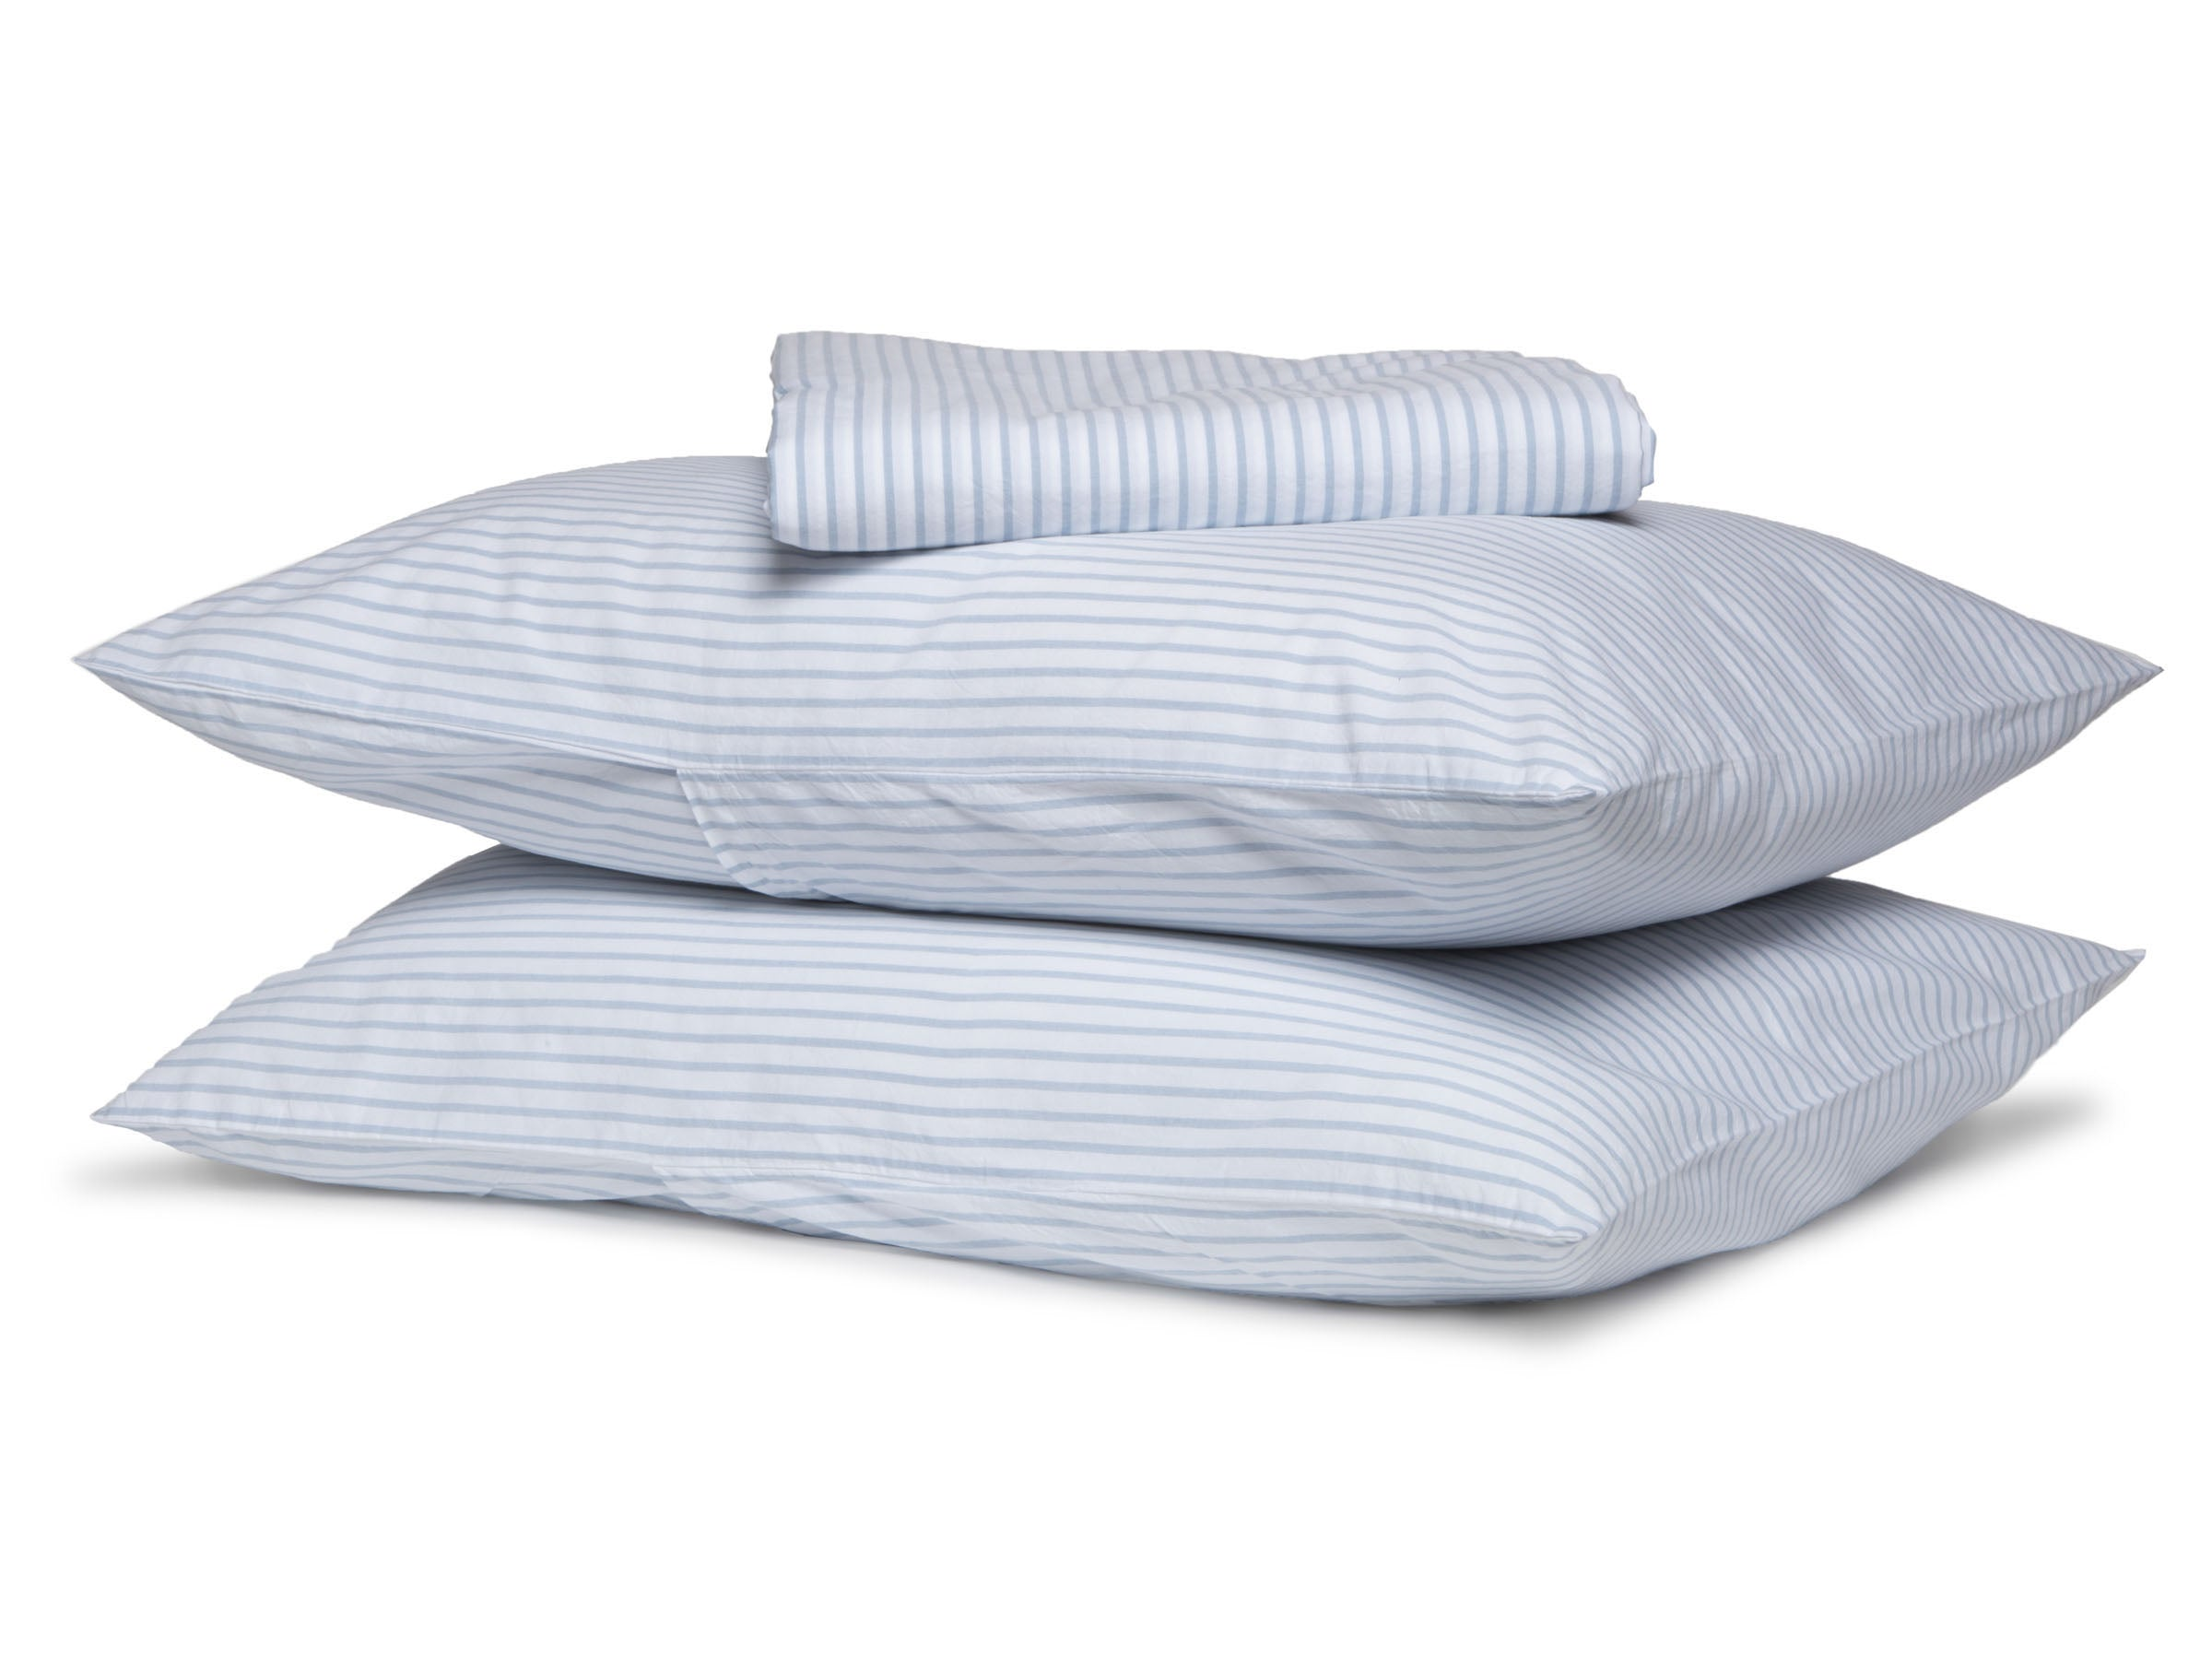 Striped Percale Sheet Set